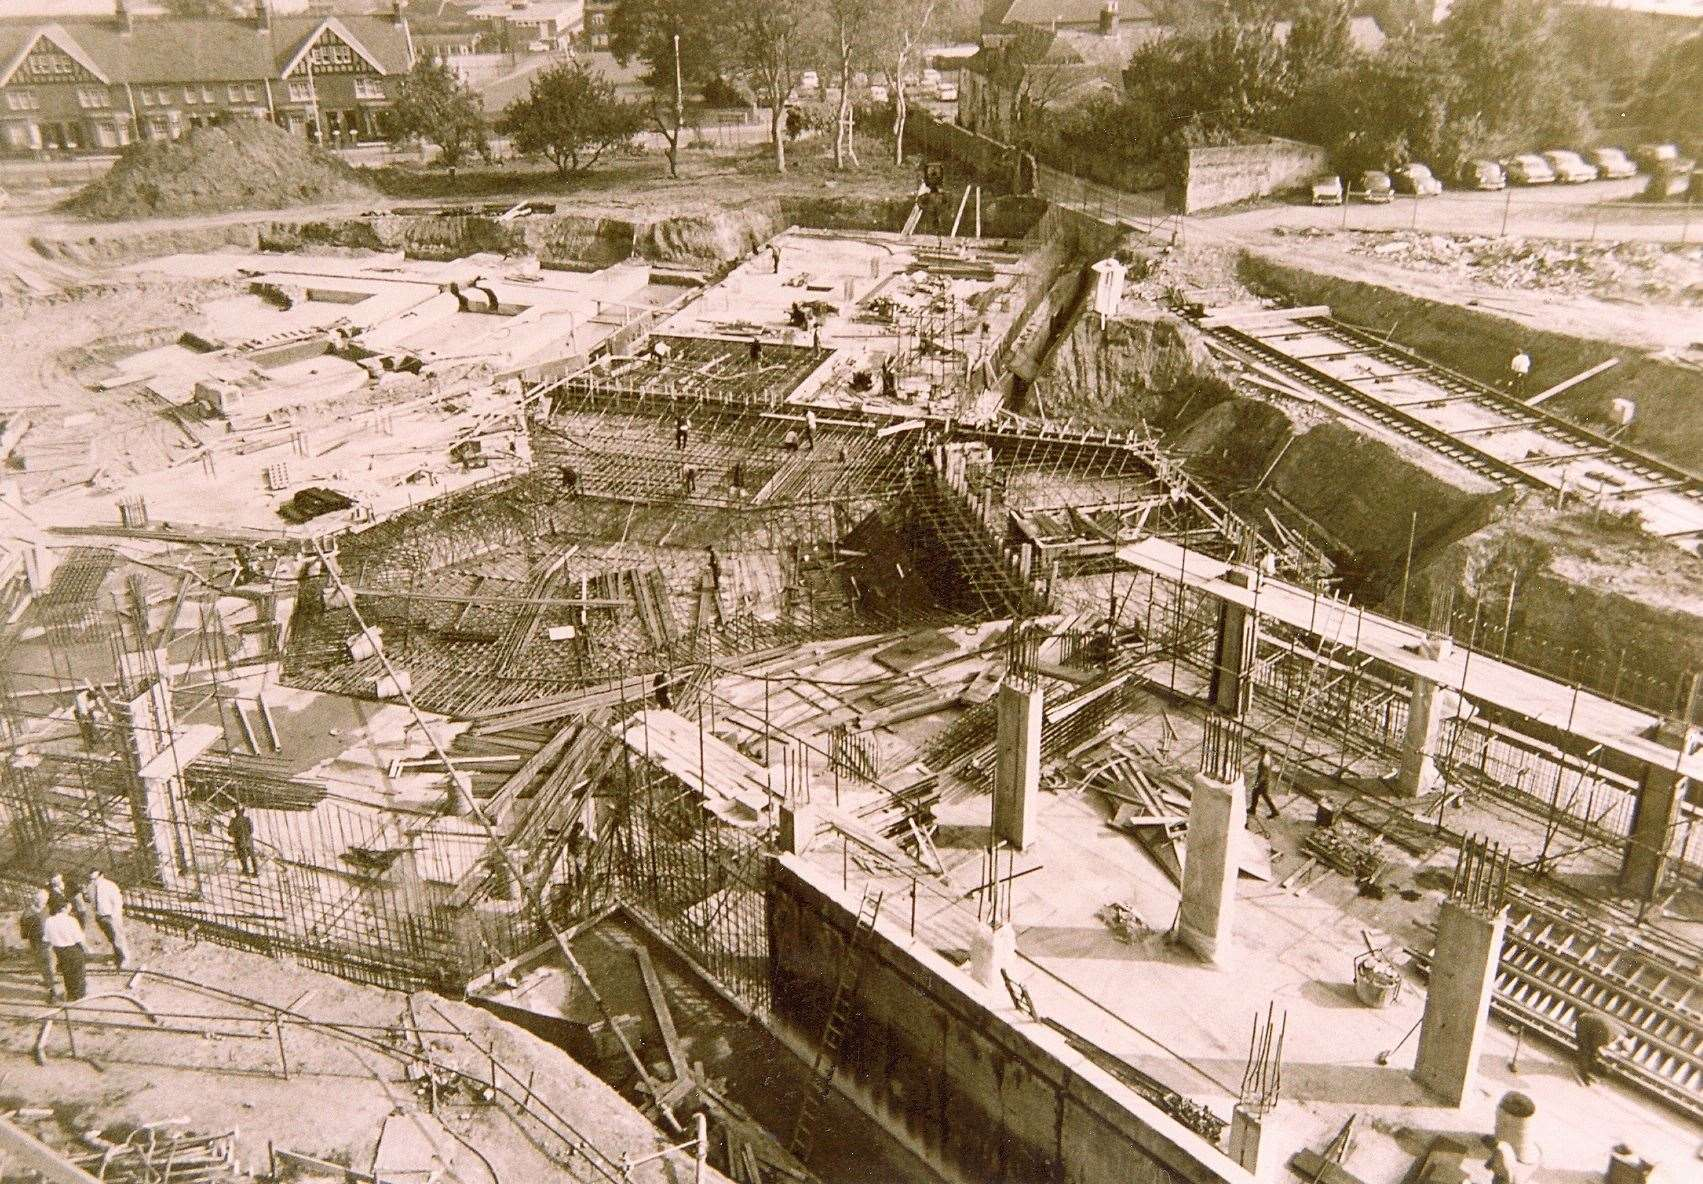 Construction work at Charter House in 1972. Picture: Steve Salter